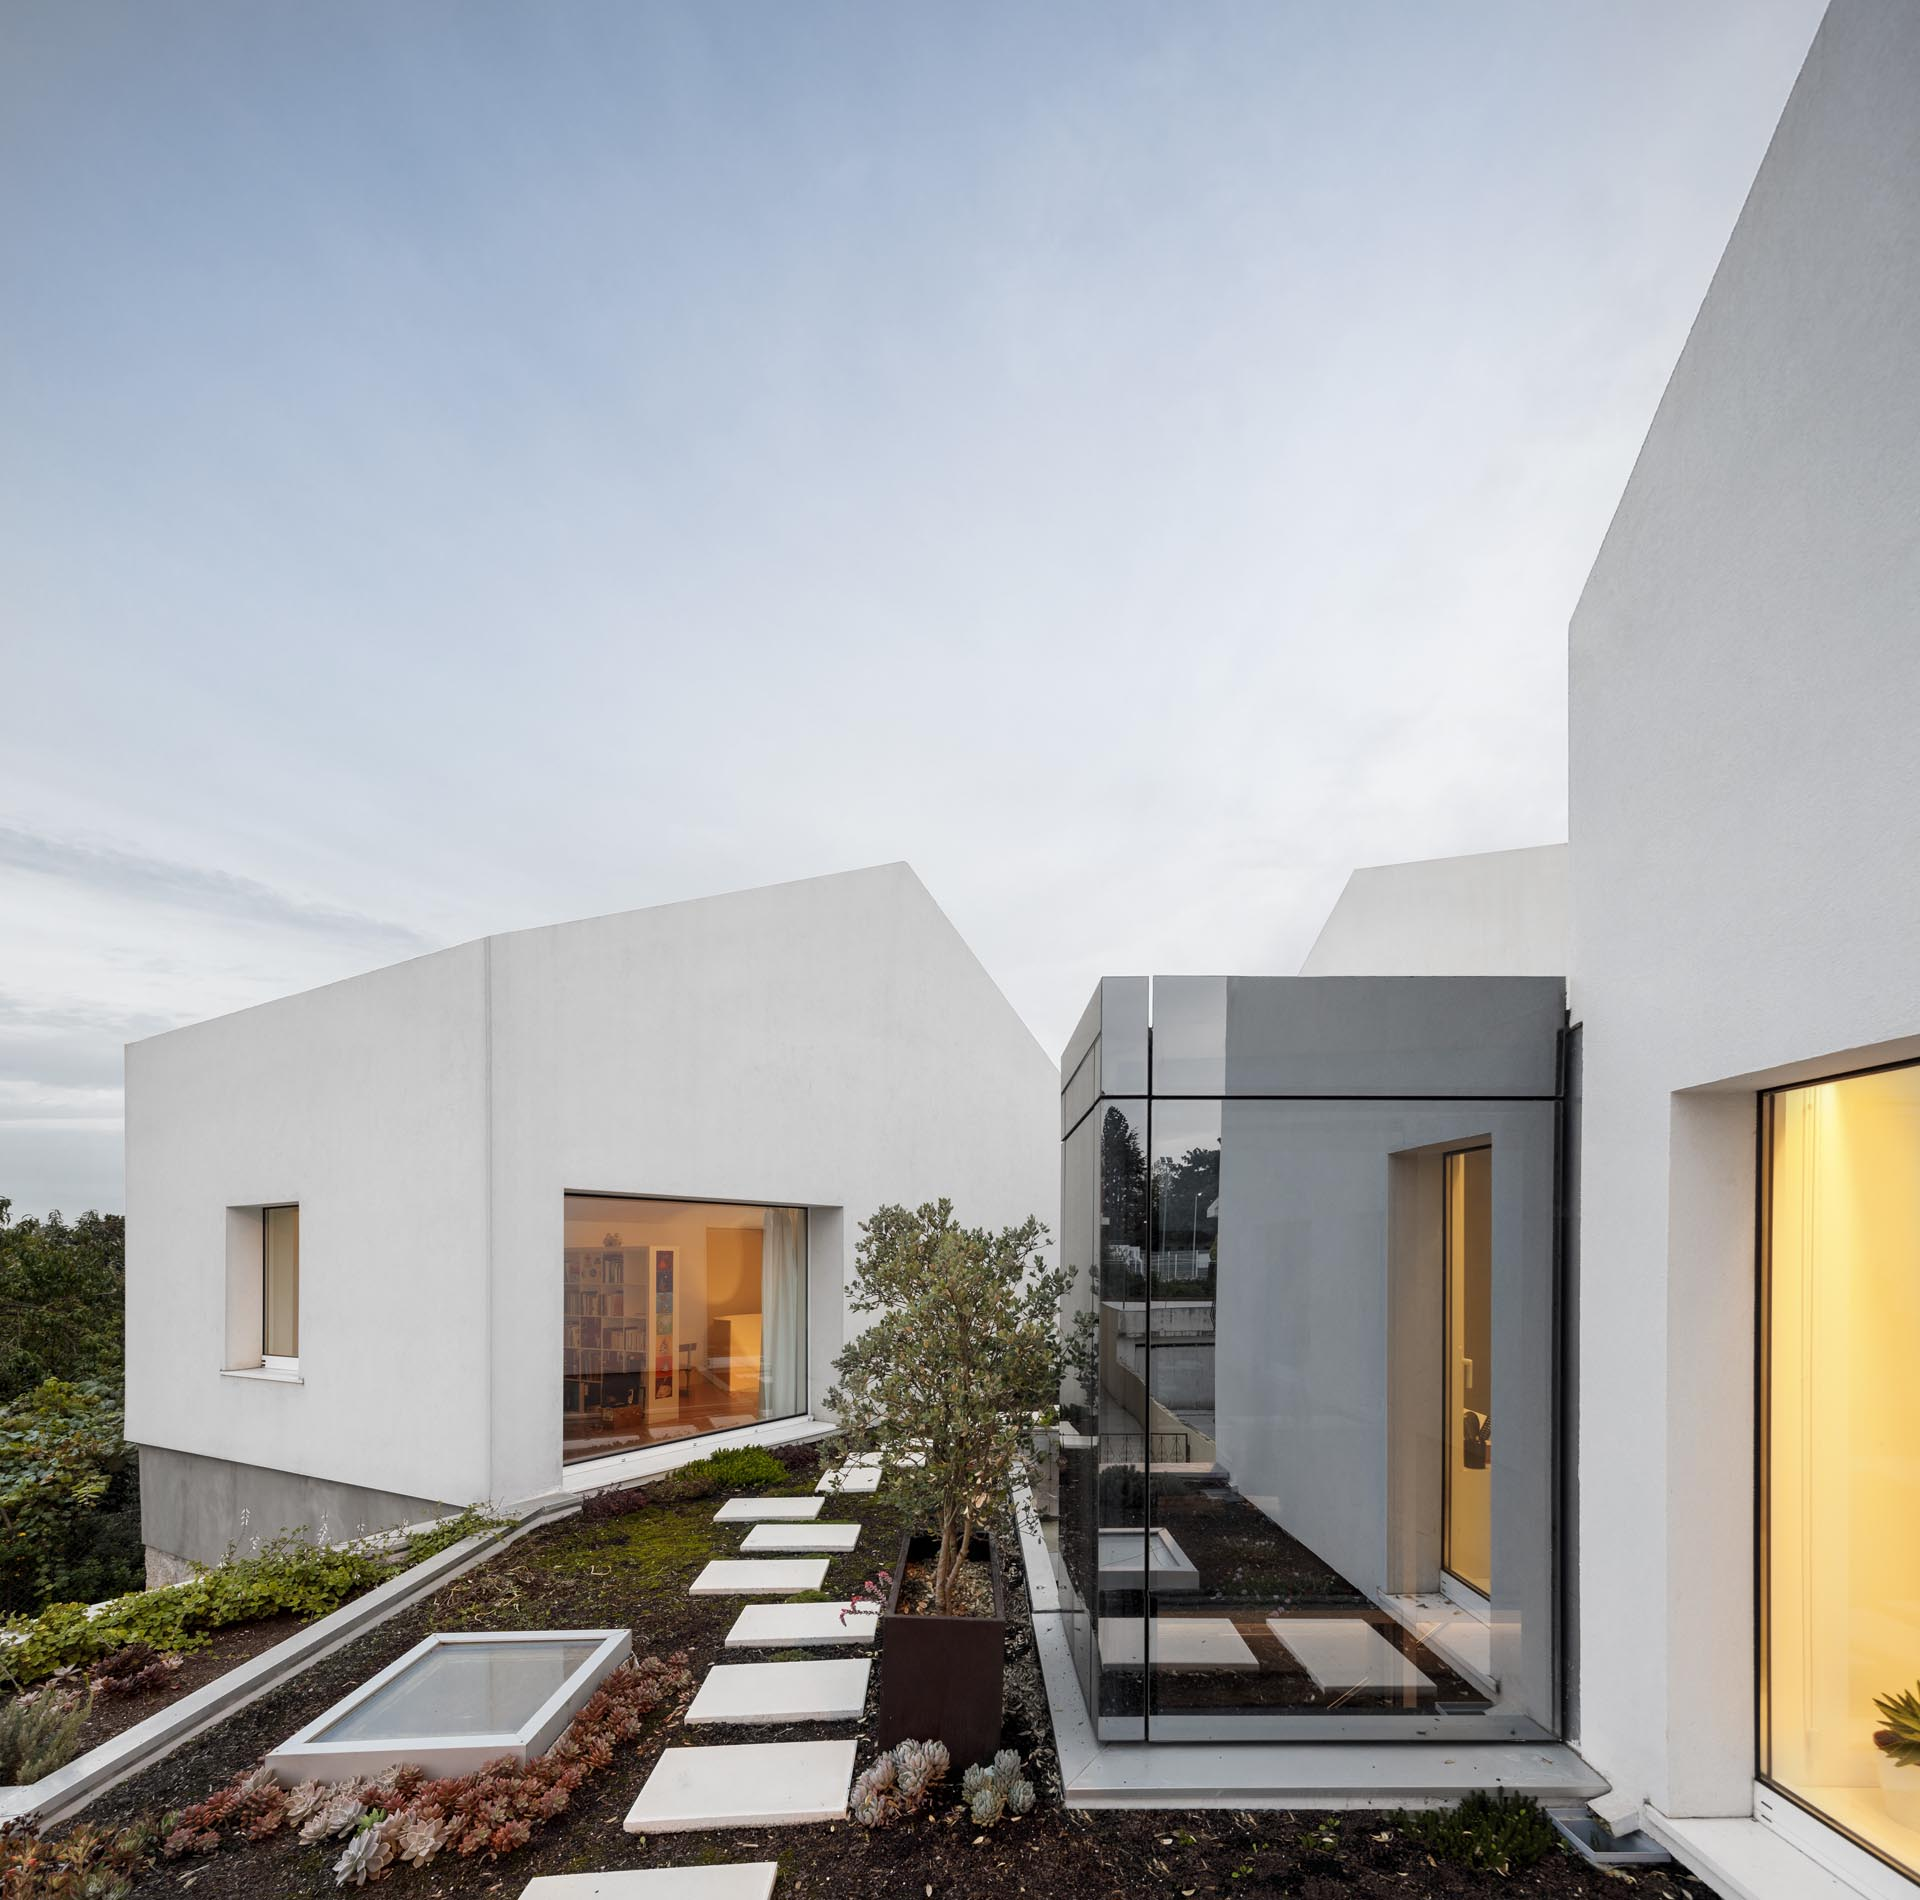 A modern home with stone walls, concrete and wood accents, and a rooftop garden.